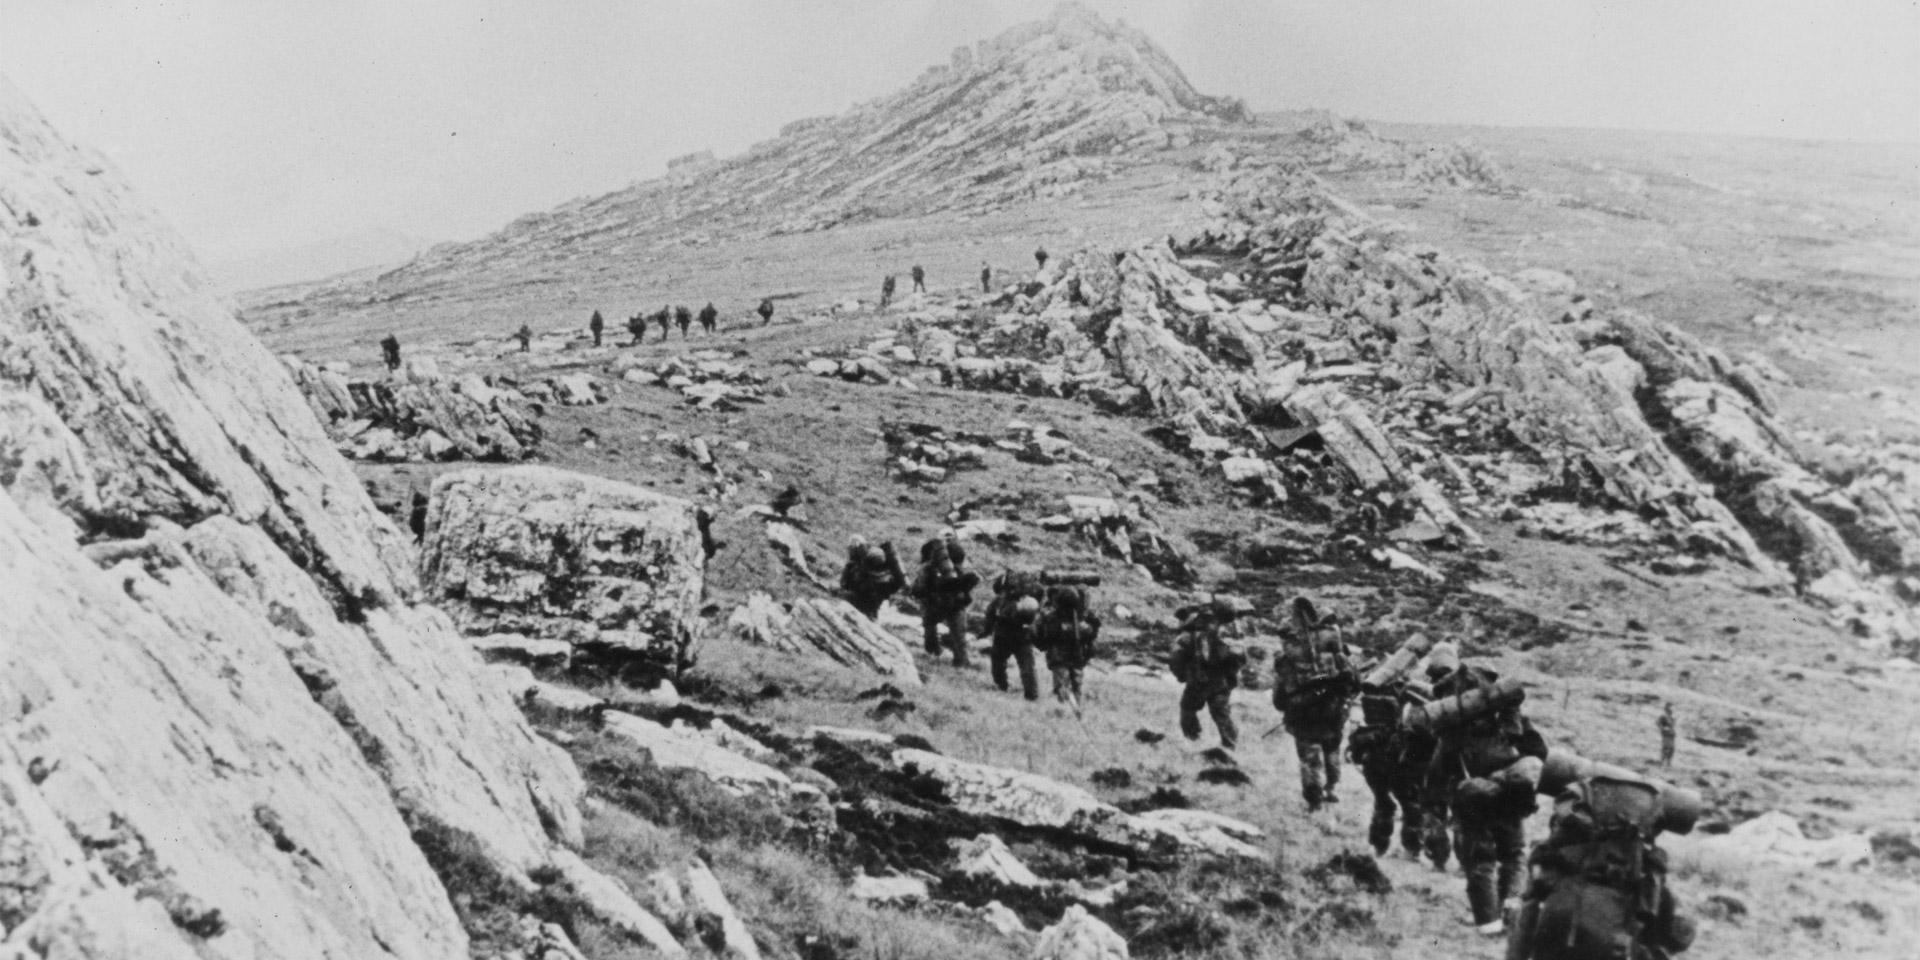 British troops march across the rocky Falklands terrain, 1982